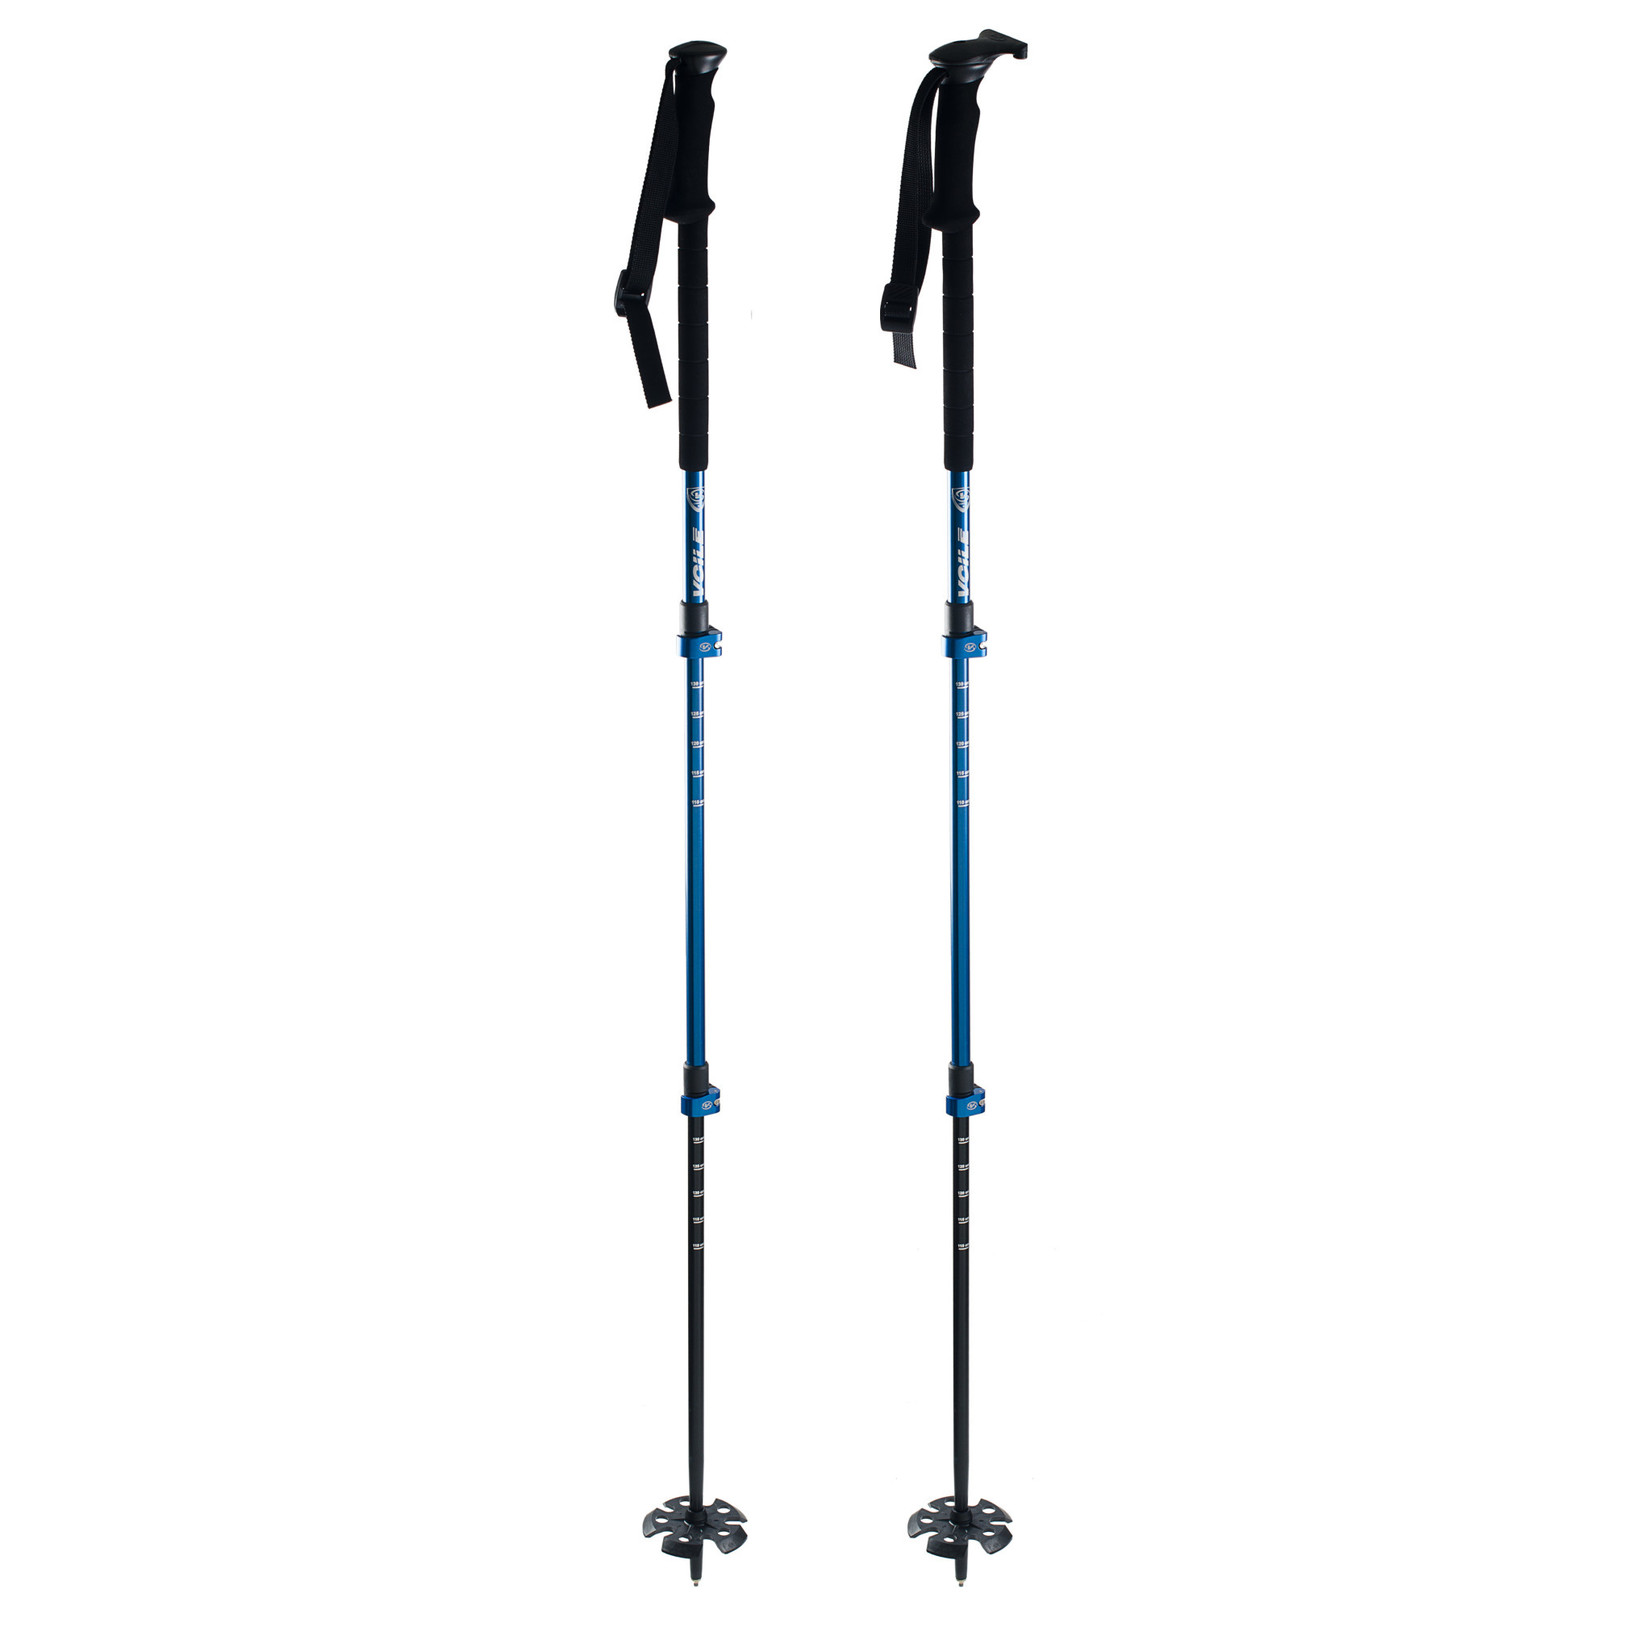 Voile Camlock 3 Touring Poles